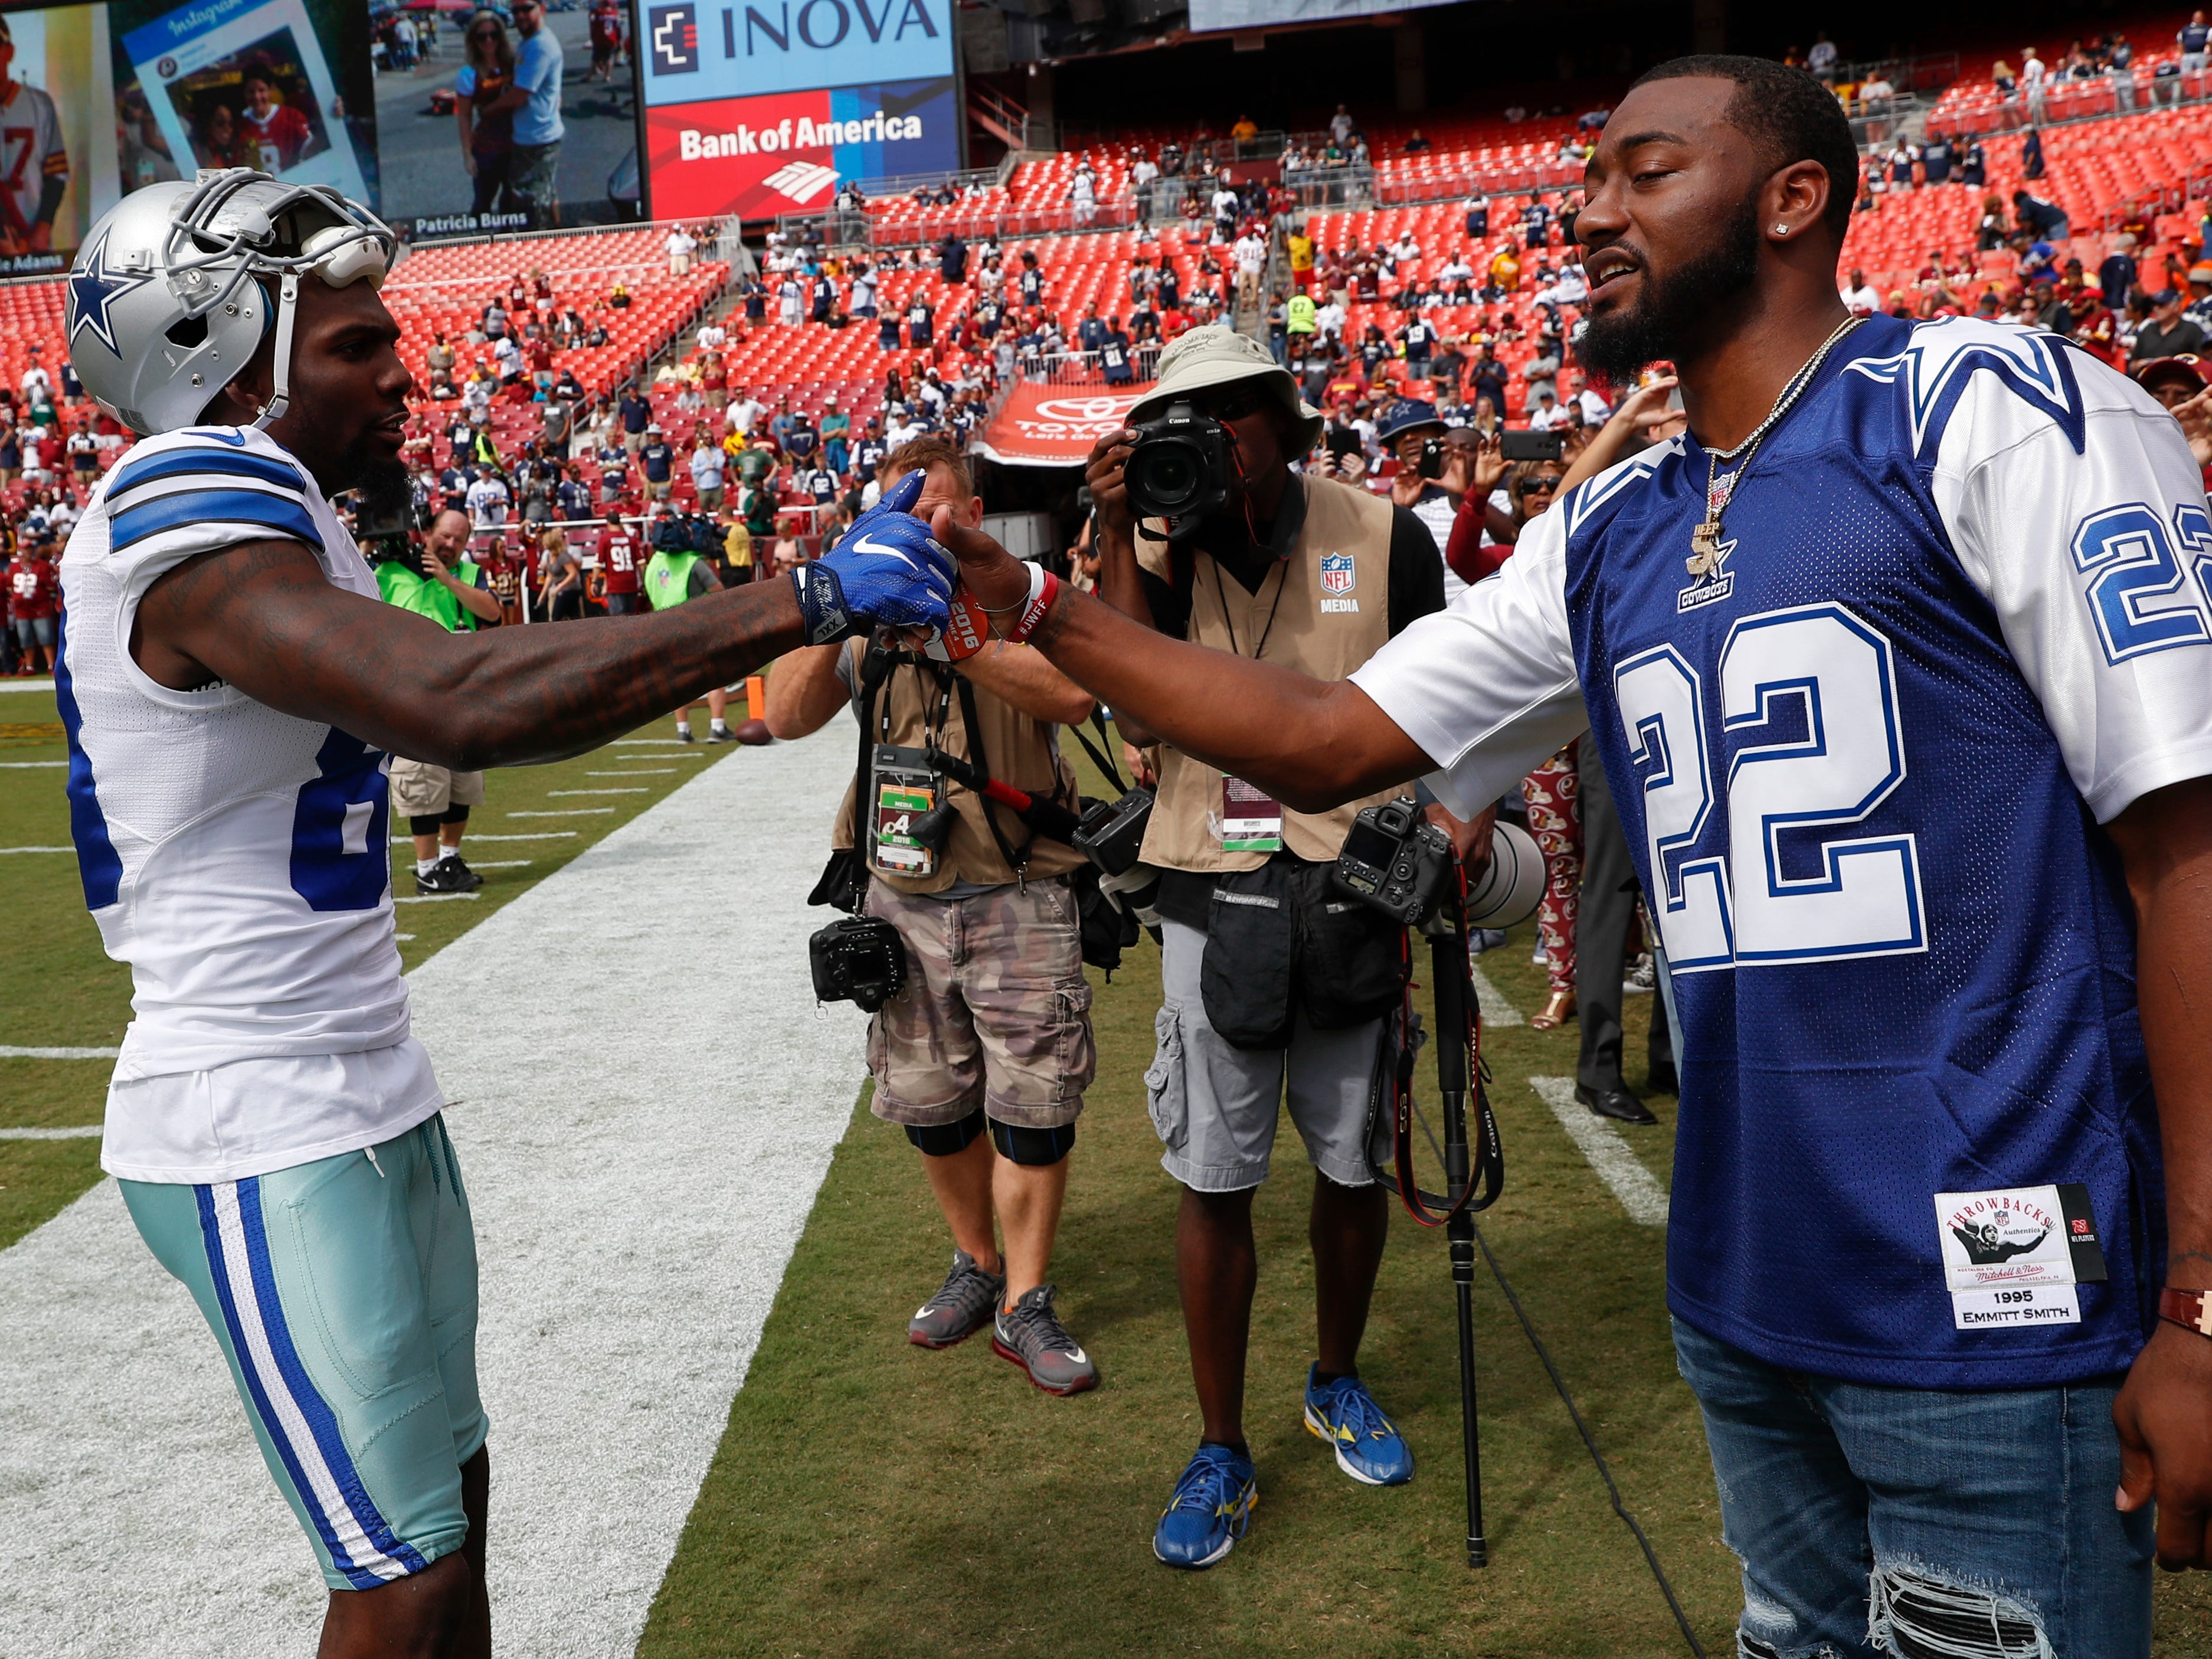 Dez Bryant greets Washington Wizards point guard John Wall before a game against the Washington Redskins in Landover, Md., in 2016.